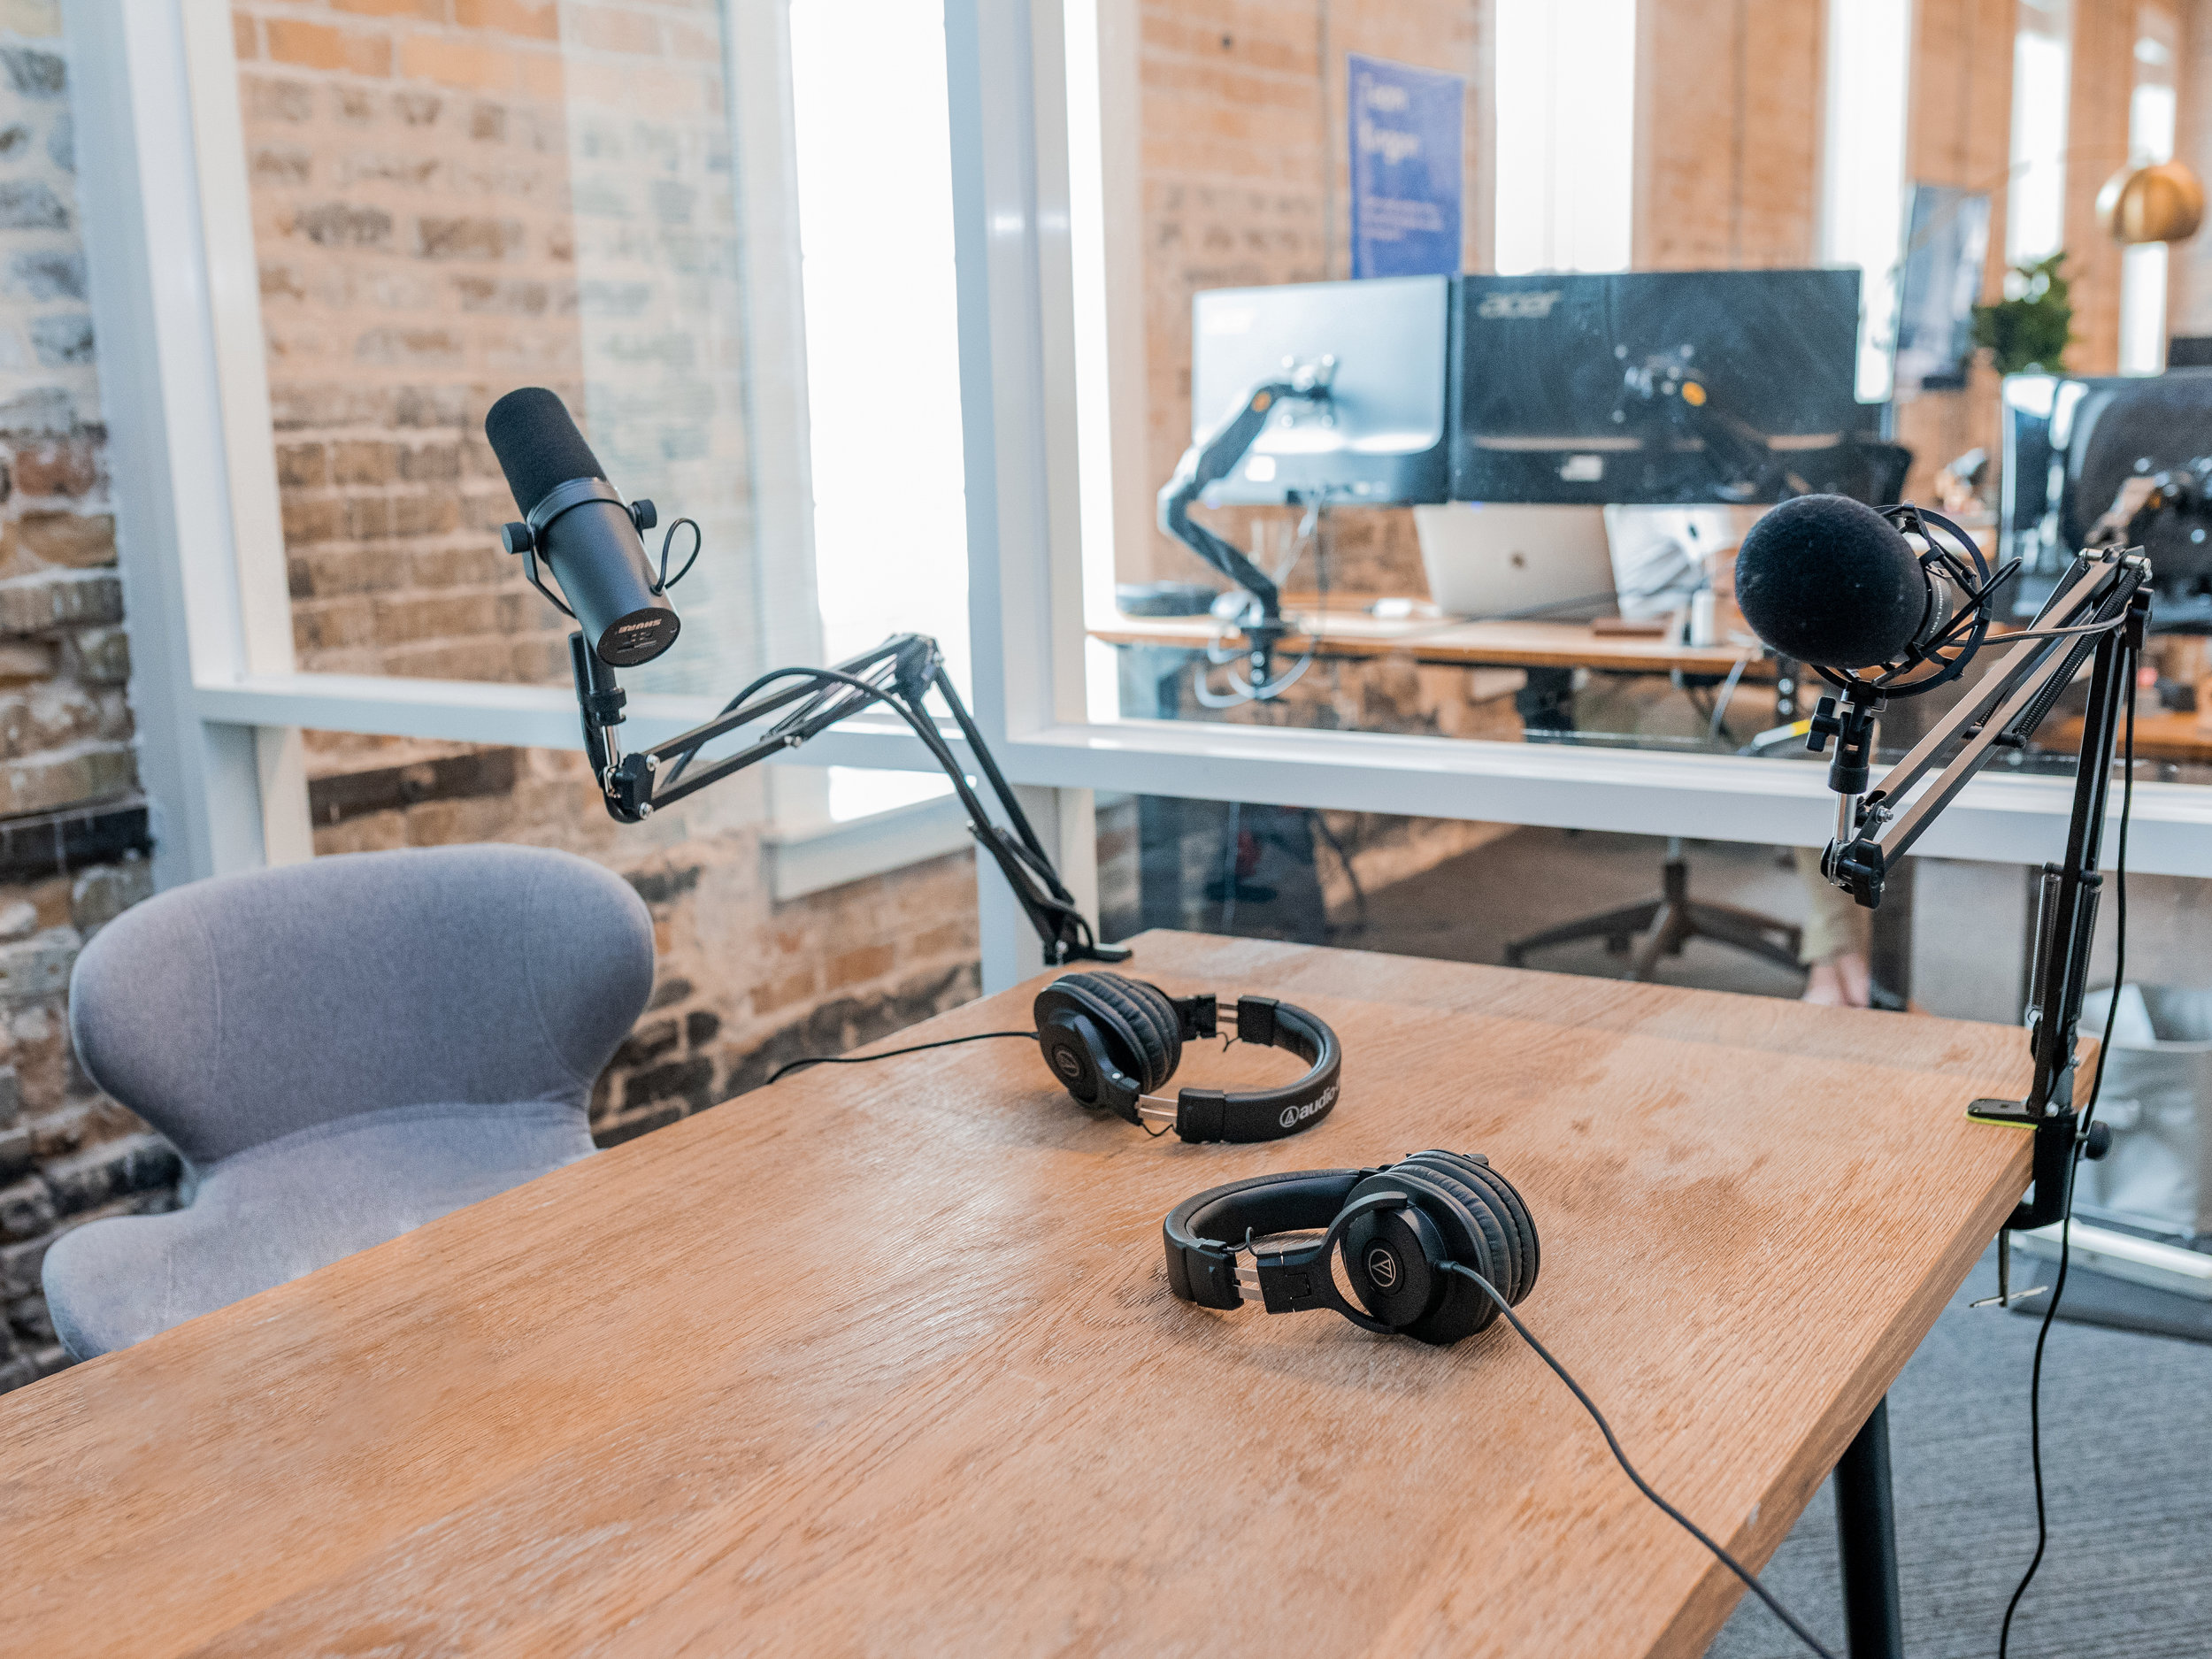 We produce podcasts. - The fastest growing content medium isn't slowing down. We work with brands and people to produce podcasts and help amplify them.